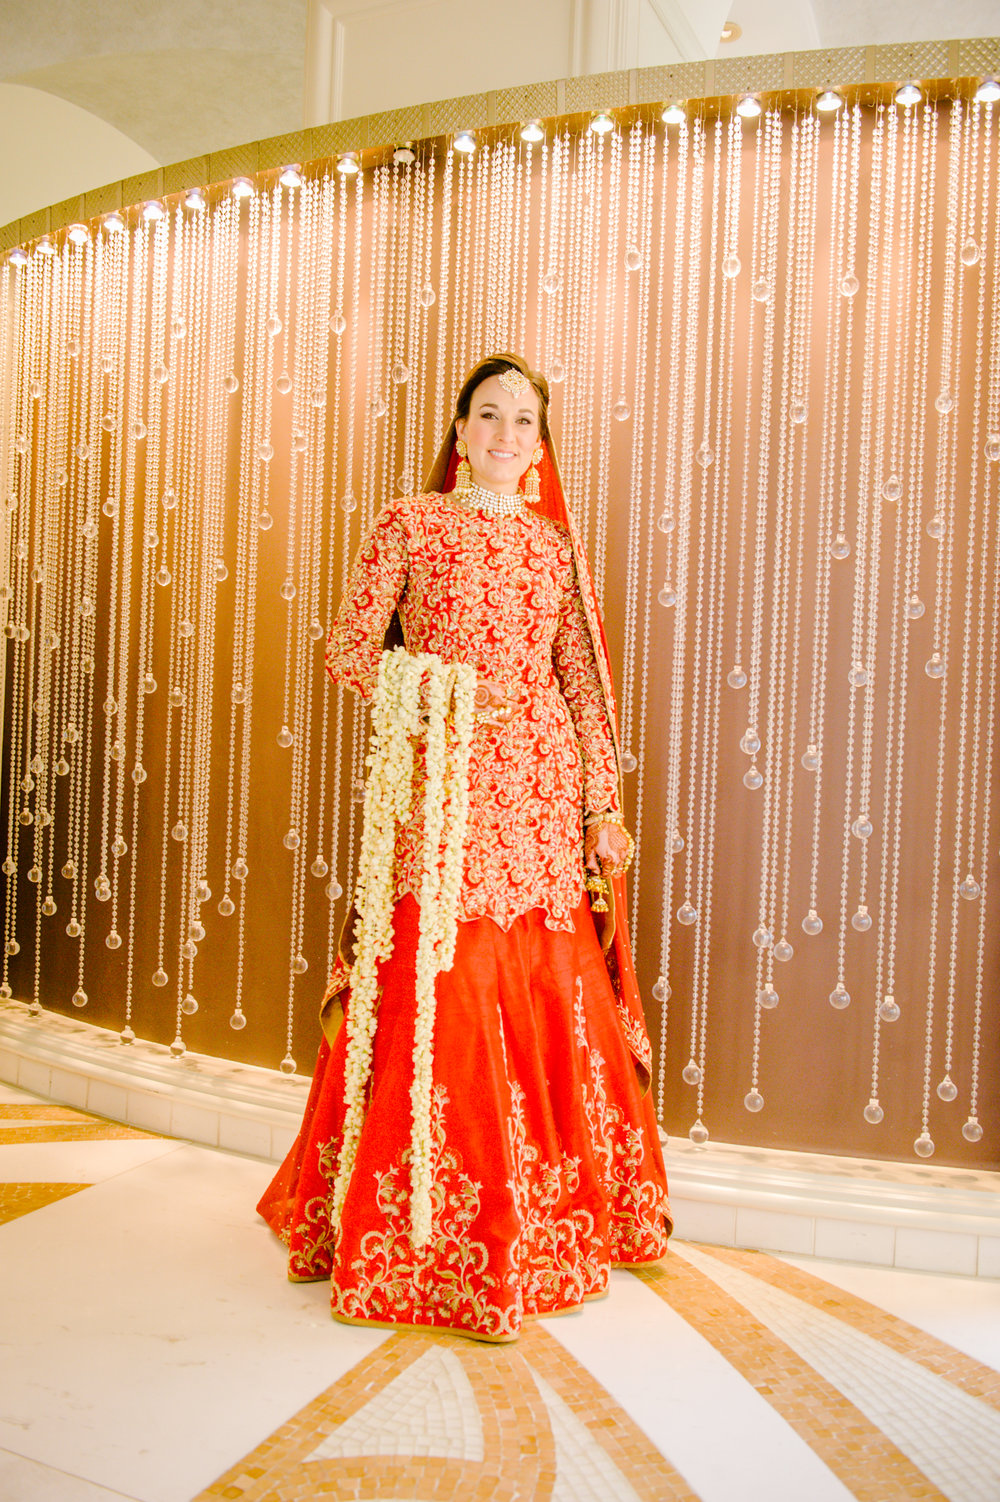 JKP_Indian_Weddings_0099.JPG